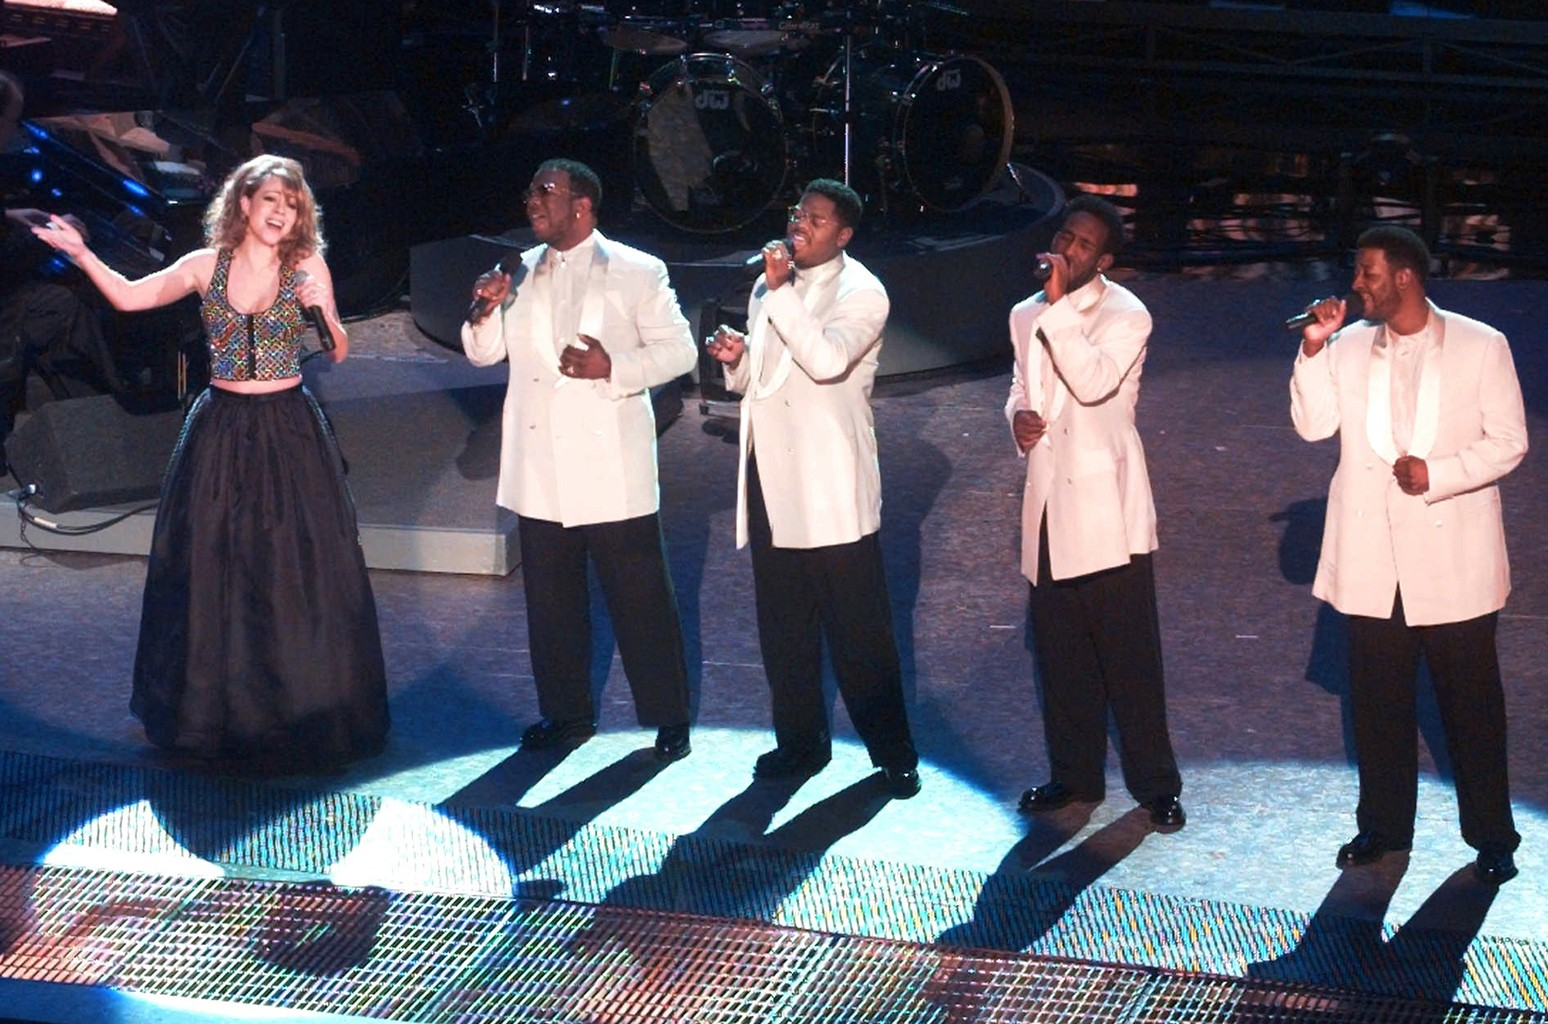 Mariah Carey performs with Boyz II Men during the opening of the 38th annual Grammy Awards at the Shrine Auditorium in Los Angeles on Feb. 28, 1996.